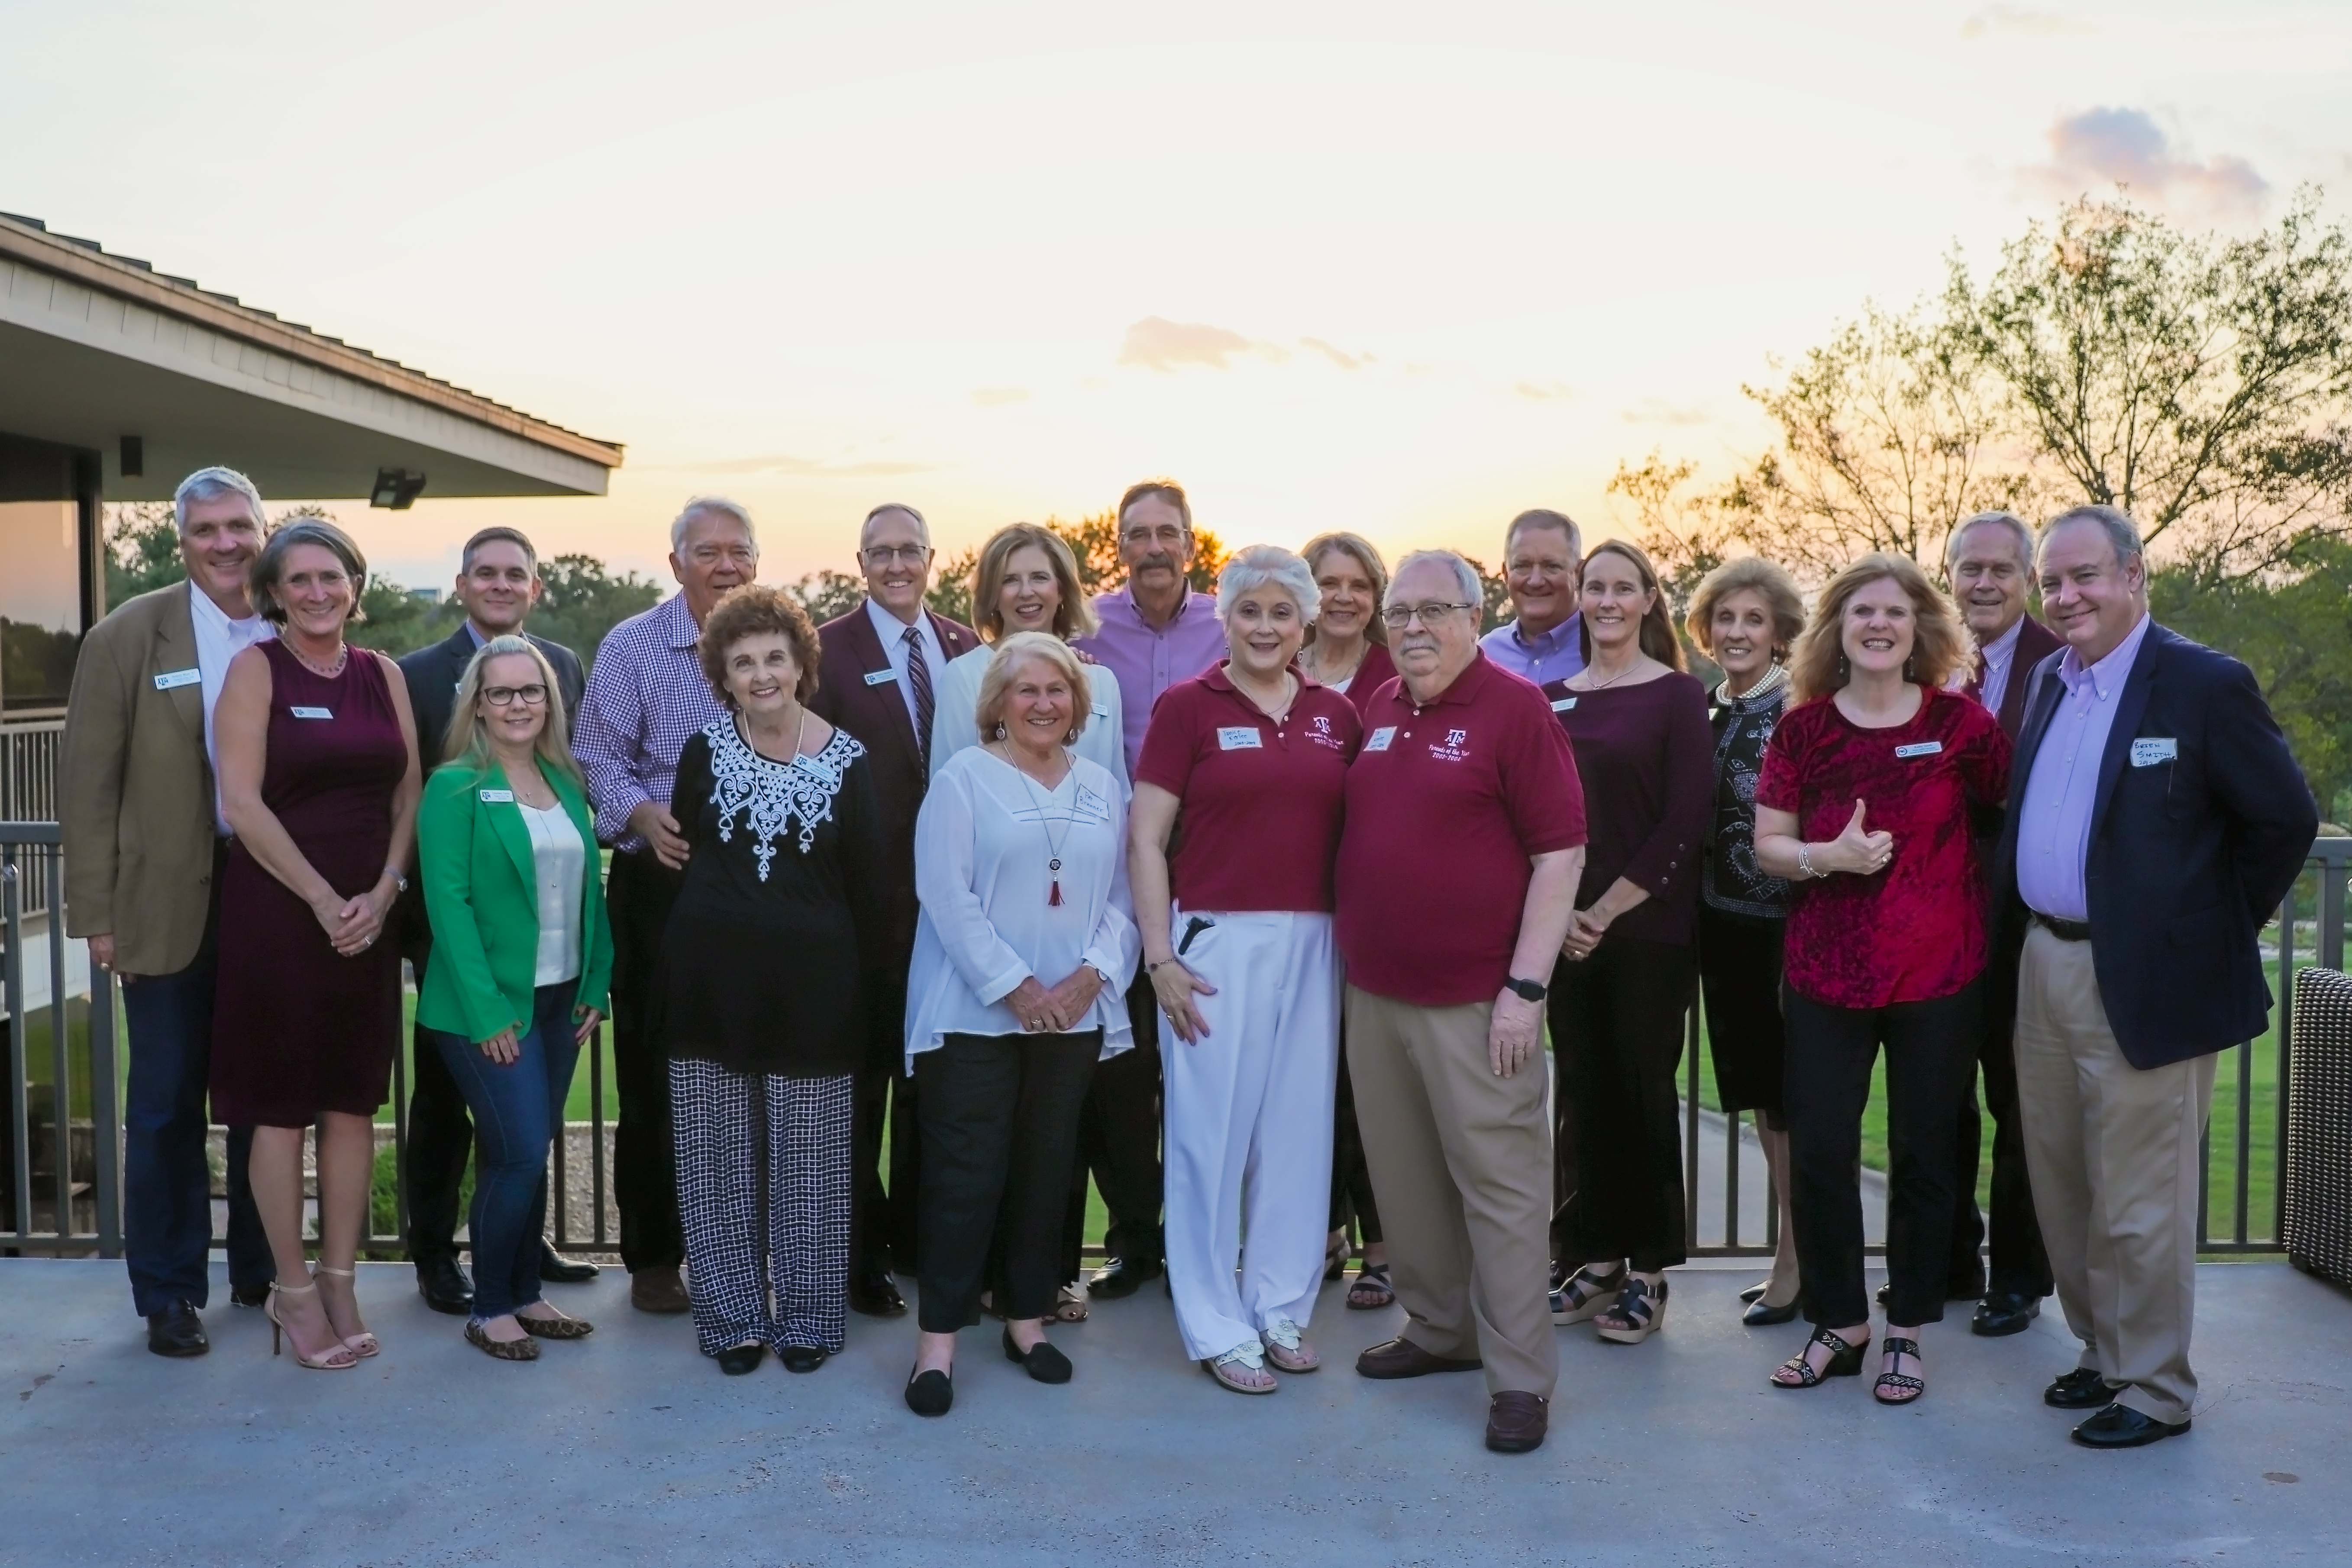 A largeo group of former parents of the year pose together for a group photo outside at sunset